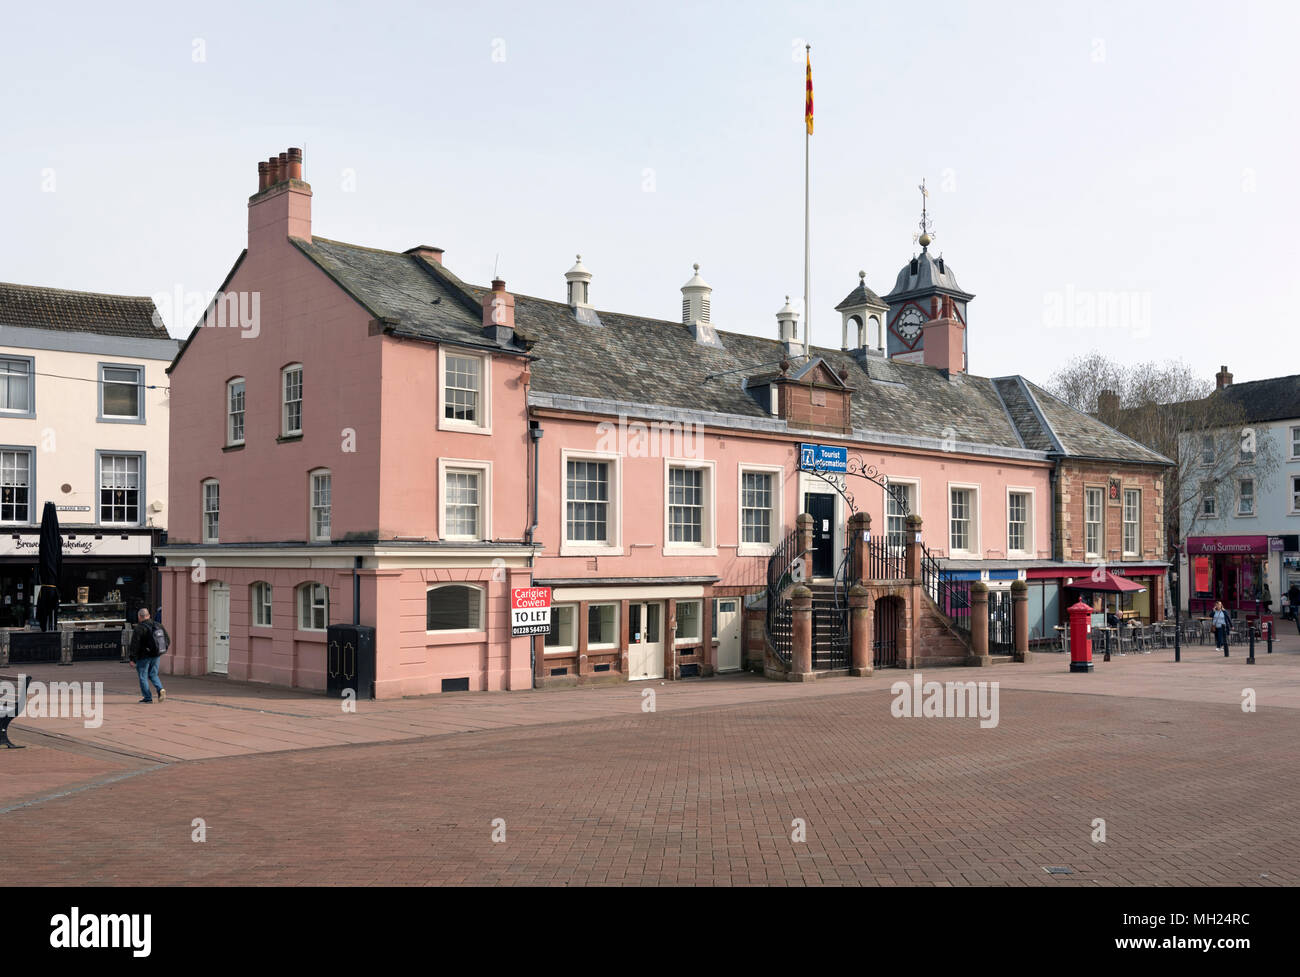 The 17th Century Old Town Hall, Market Place, Carlisle, Cumbria, UK, a Grade One Listed Building. - Stock Image